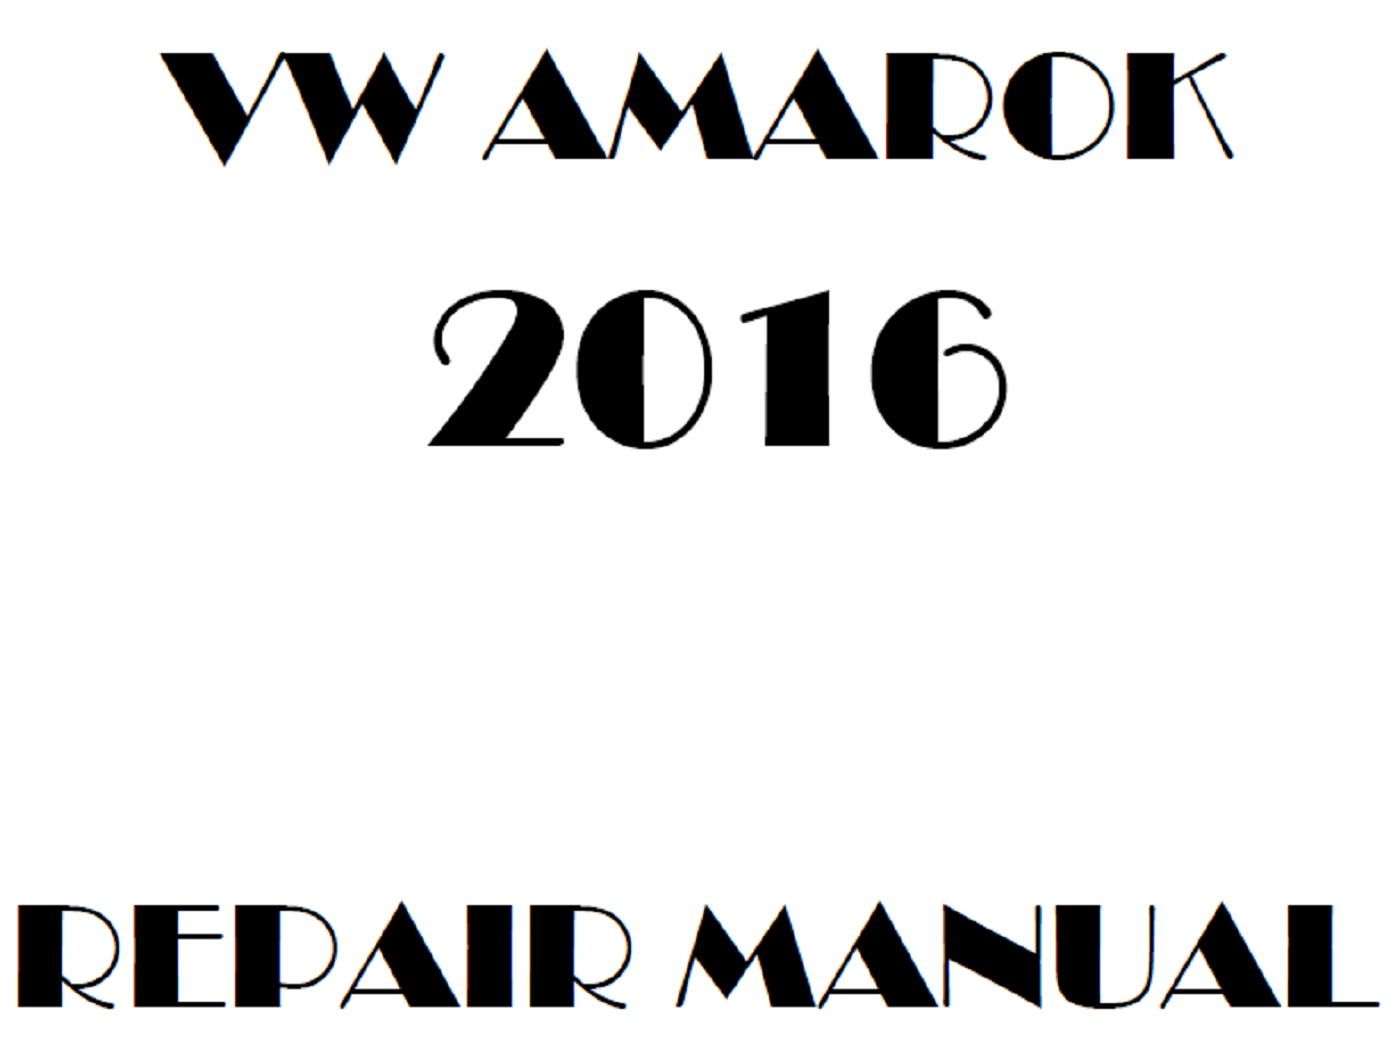 2016 Volkswagen Amarok repair manual